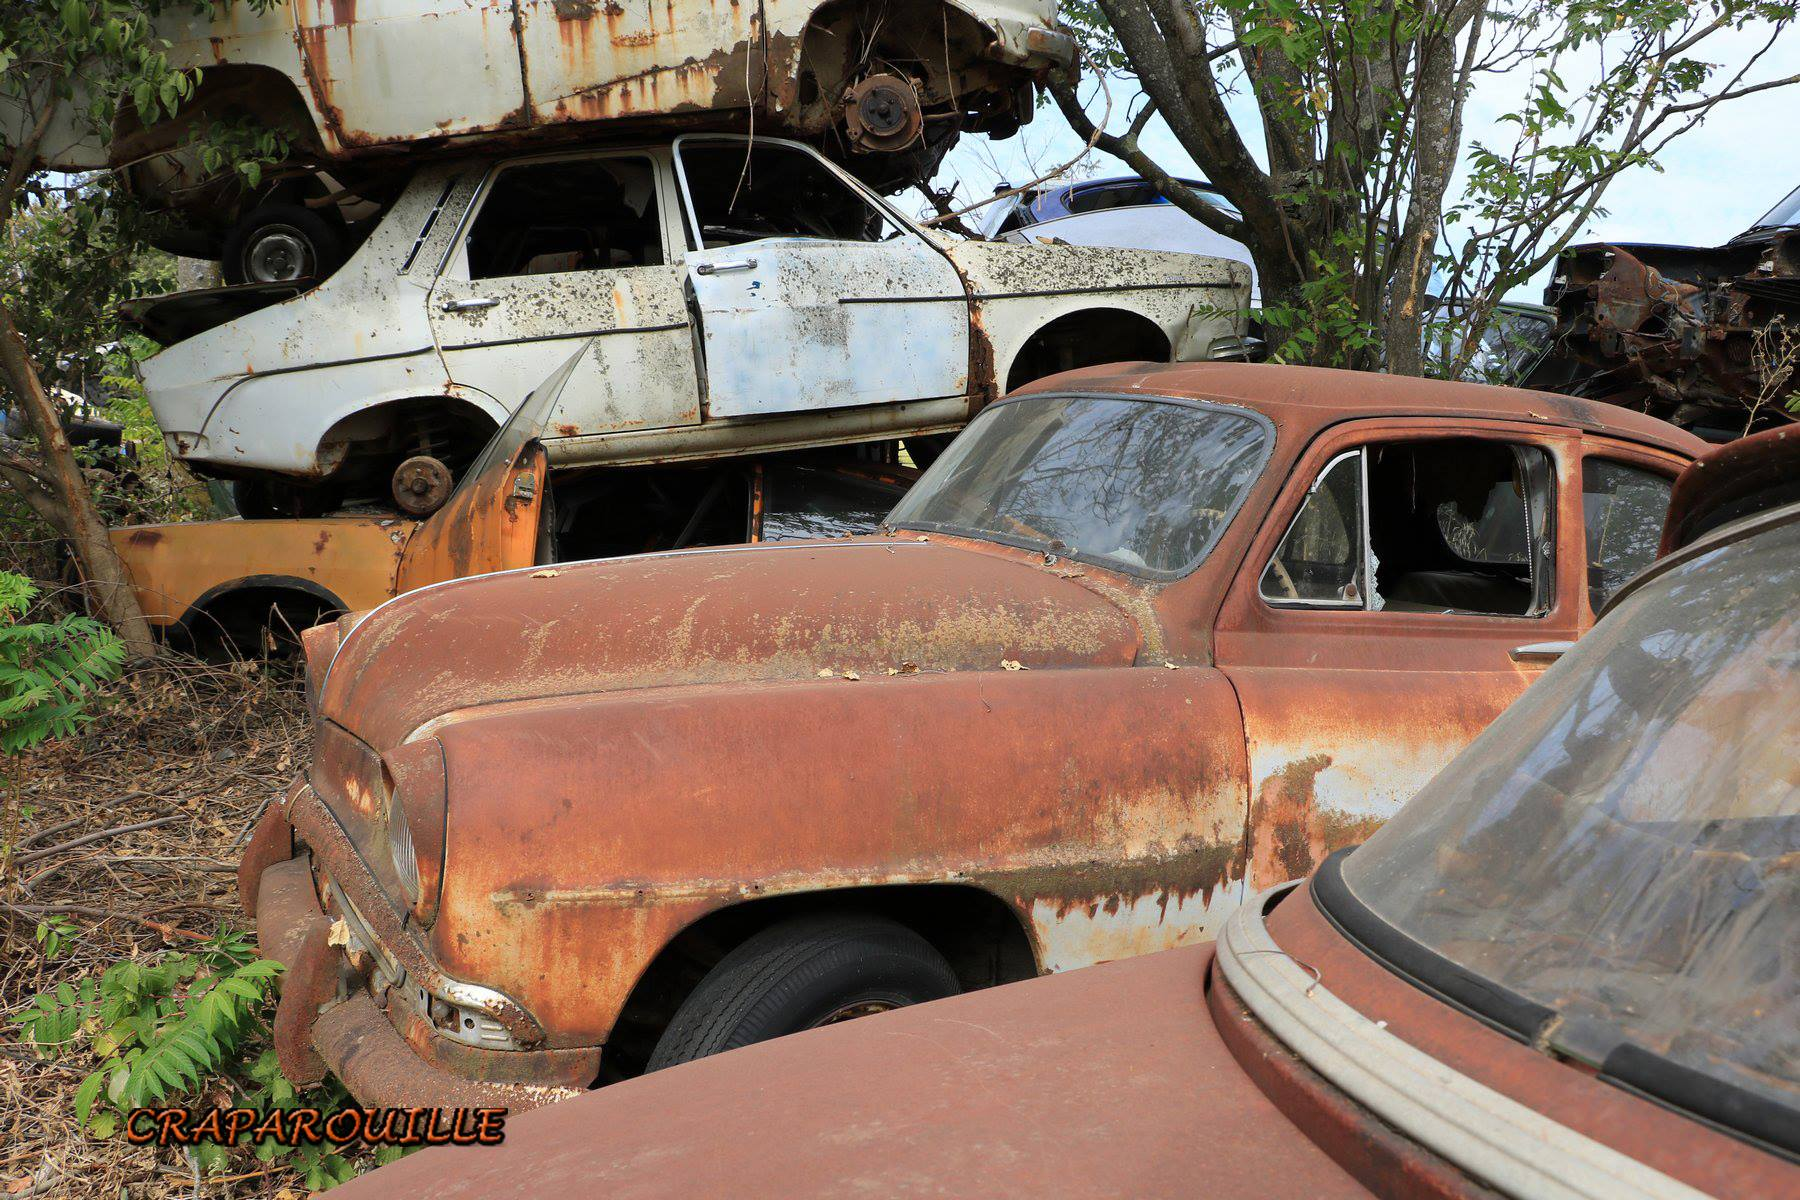 Photography-Diamonds-in-Rust-Craparouille-86